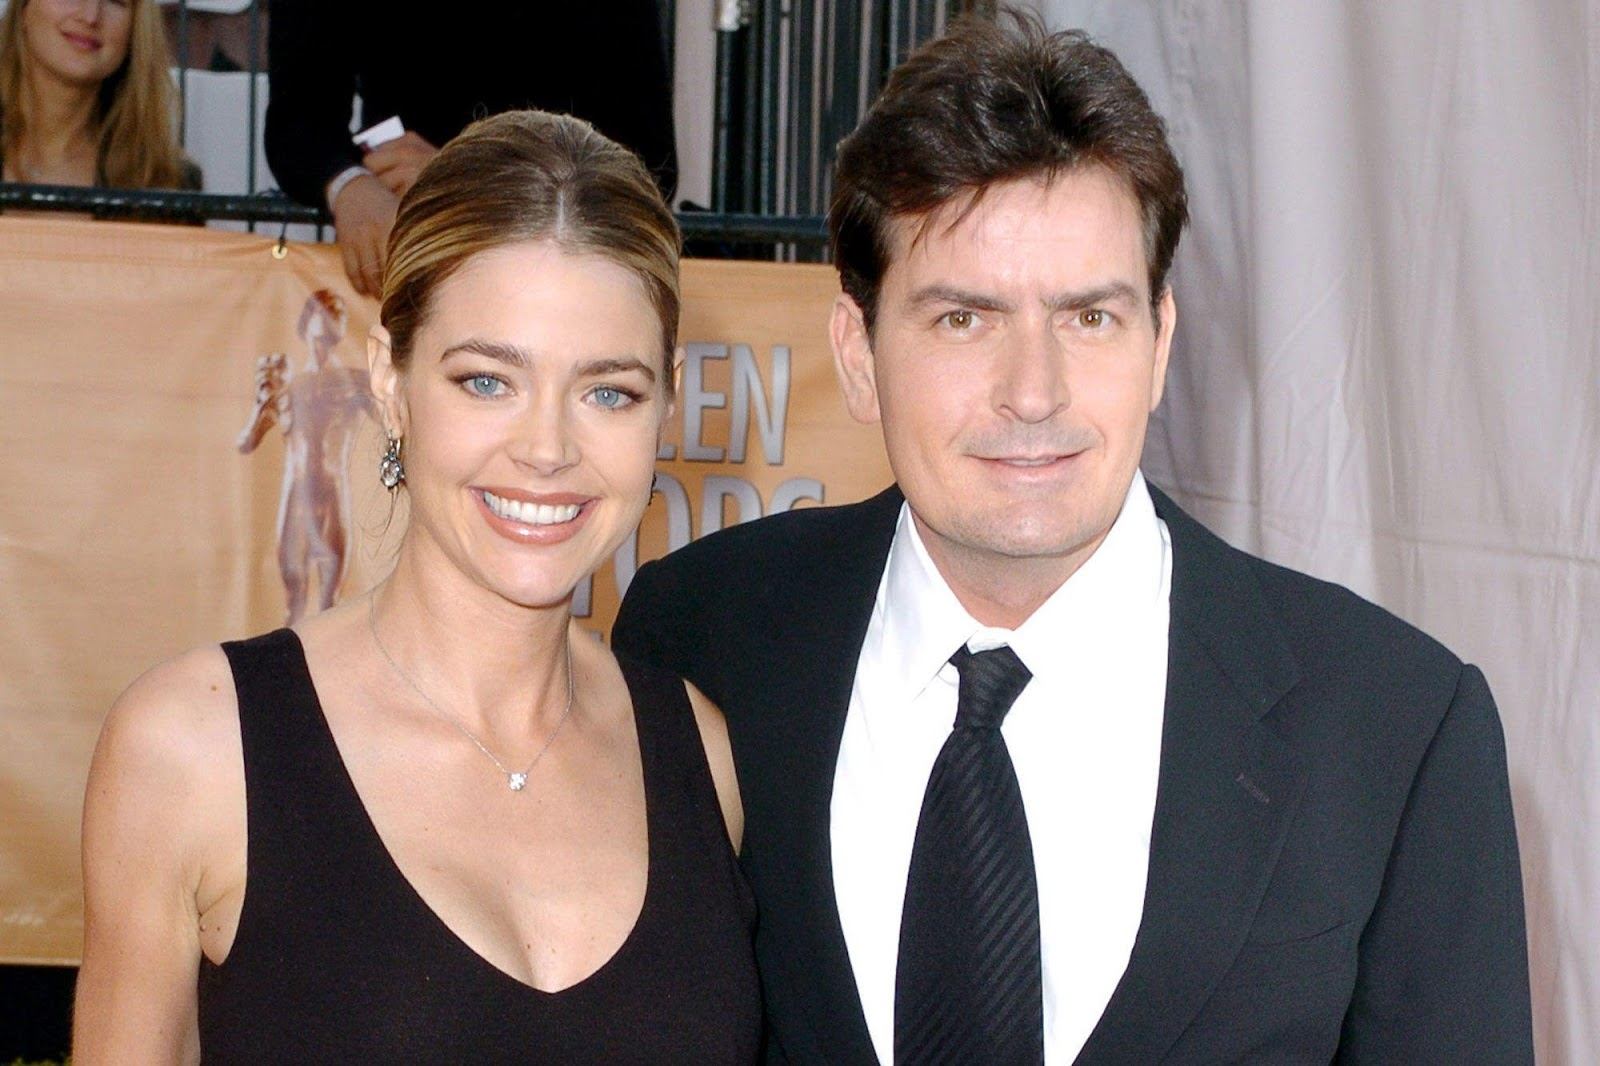 Denise Richards details marriage to Charlie Sheen: We weren't a crazy couple